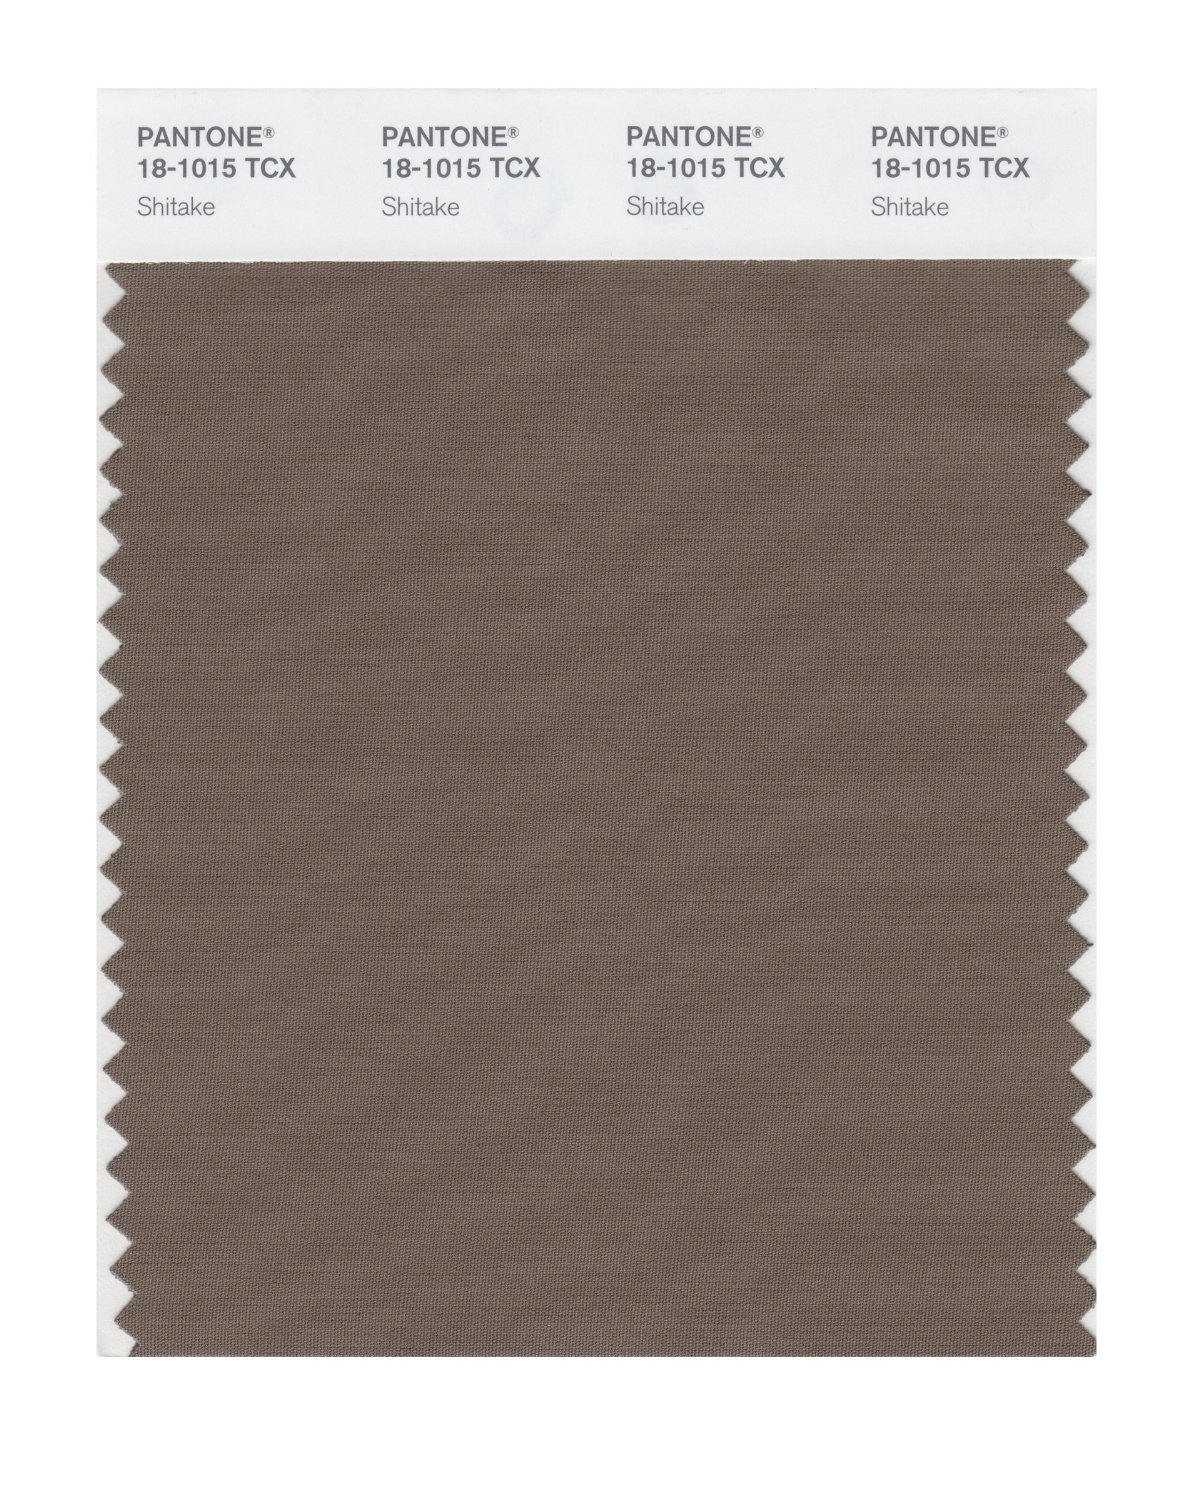 Pantone Smart Swatch 18-1015 Shitake